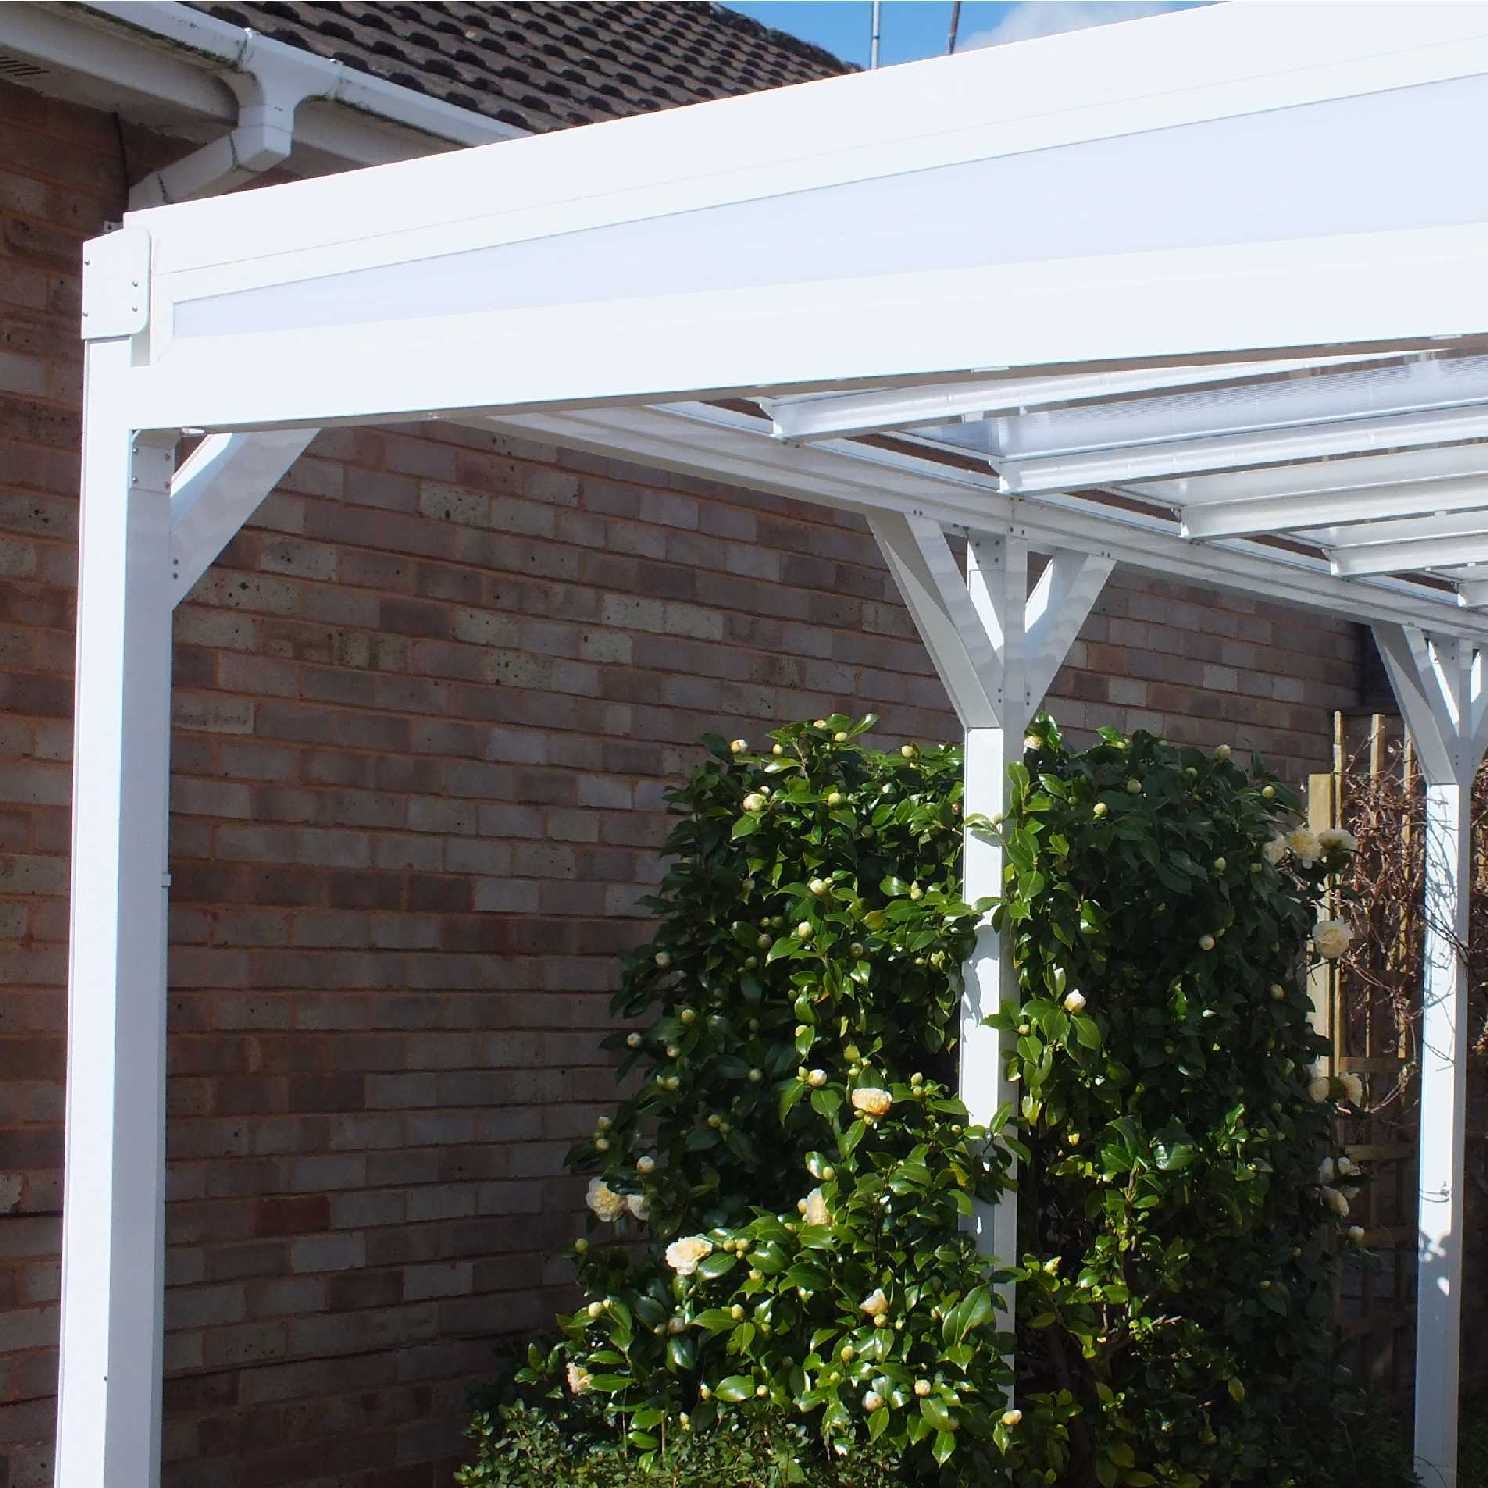 Omega Smart Lean-To Canopy with 16mm Polycarbonate Glazing - 9.5m (W) x 2.5m (P), (5) Supporting Posts from Omega Build